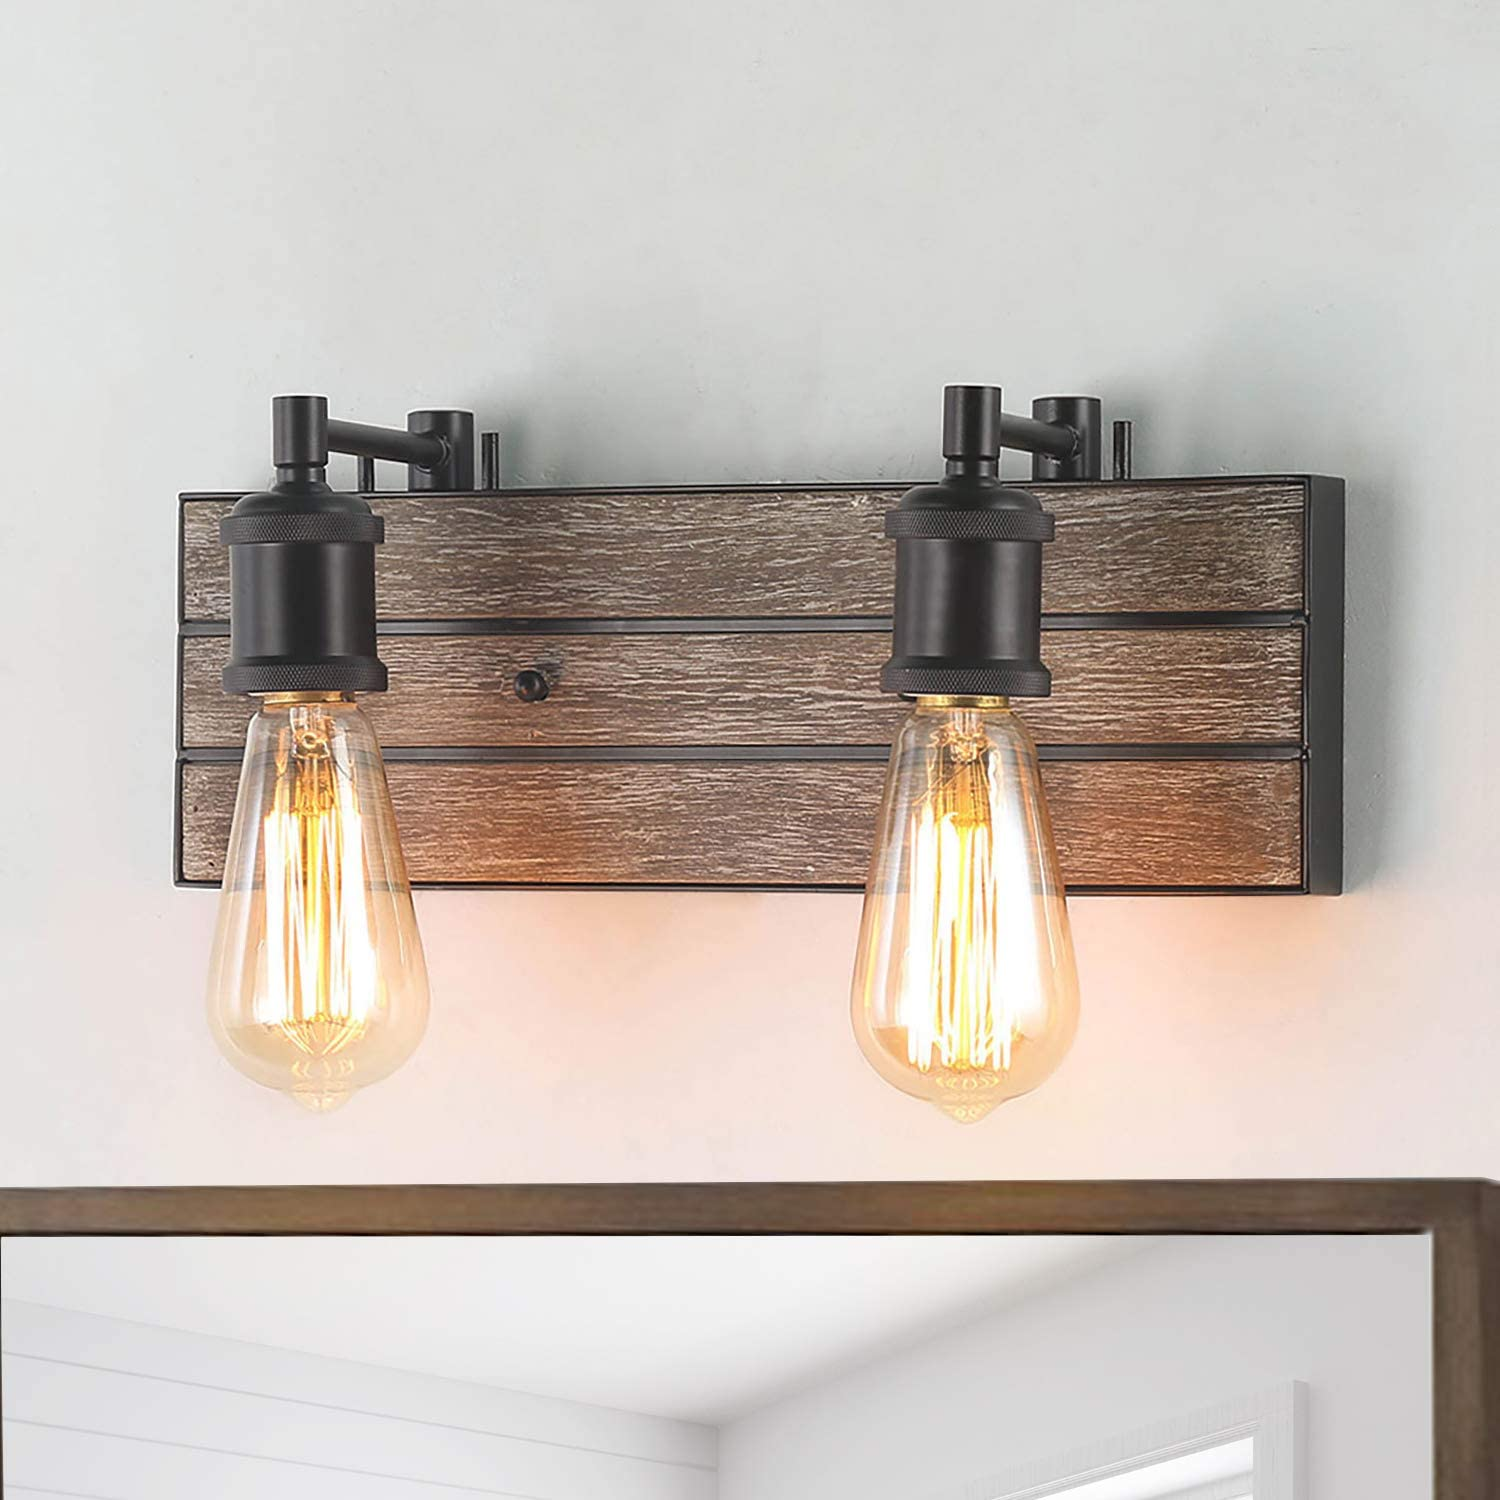 LOG BARN Vanity Lights, Wall Sconce in Rustic Wood and Oil Rubbed Metal Water Pipe Finish, Bathroom Fixture with Adjustable Sockets Over Mirrors